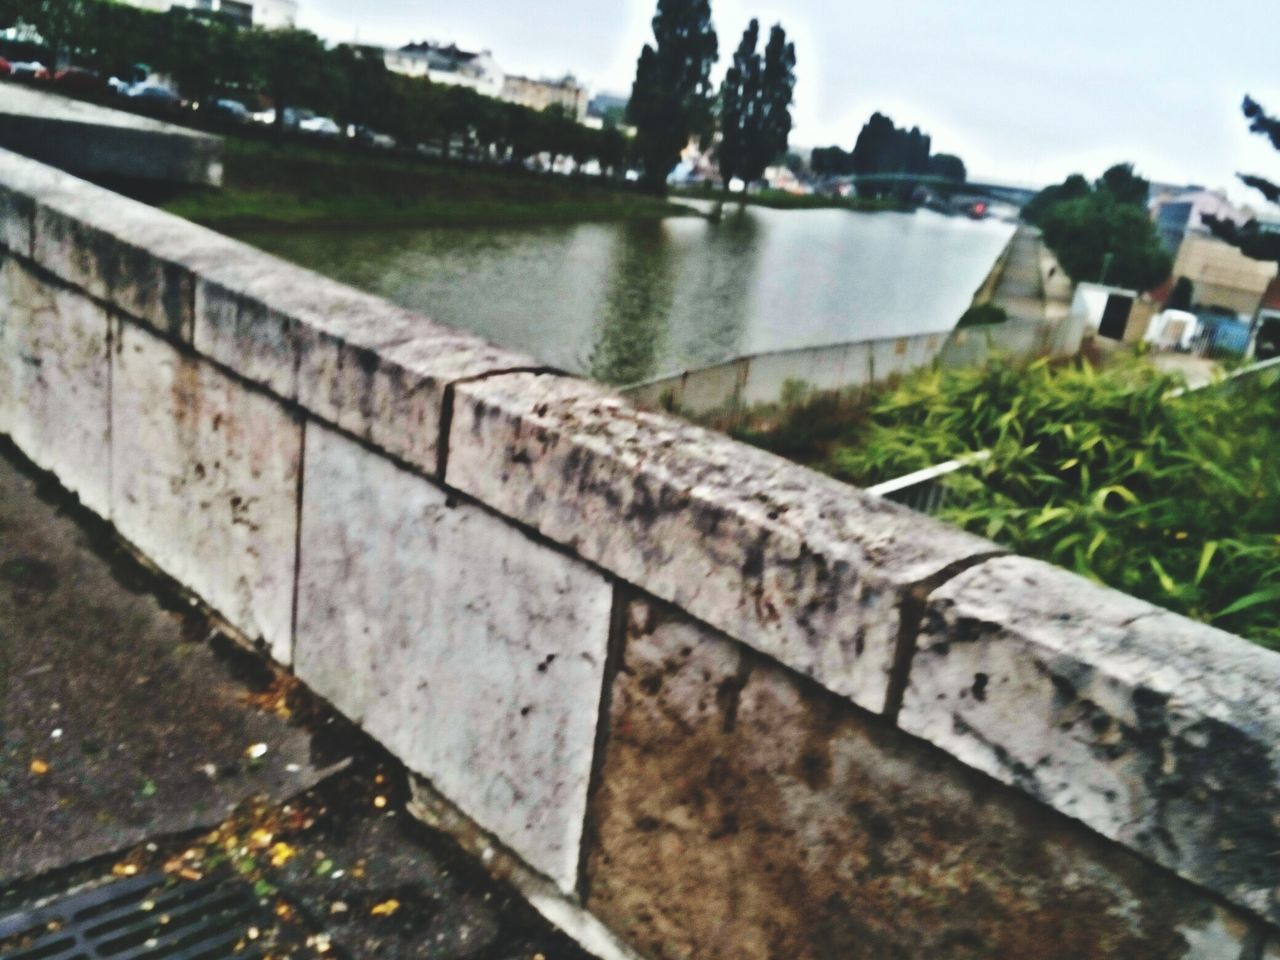 water, outdoors, day, focus on foreground, built structure, no people, architecture, nature, close-up, retaining wall, building exterior, sky